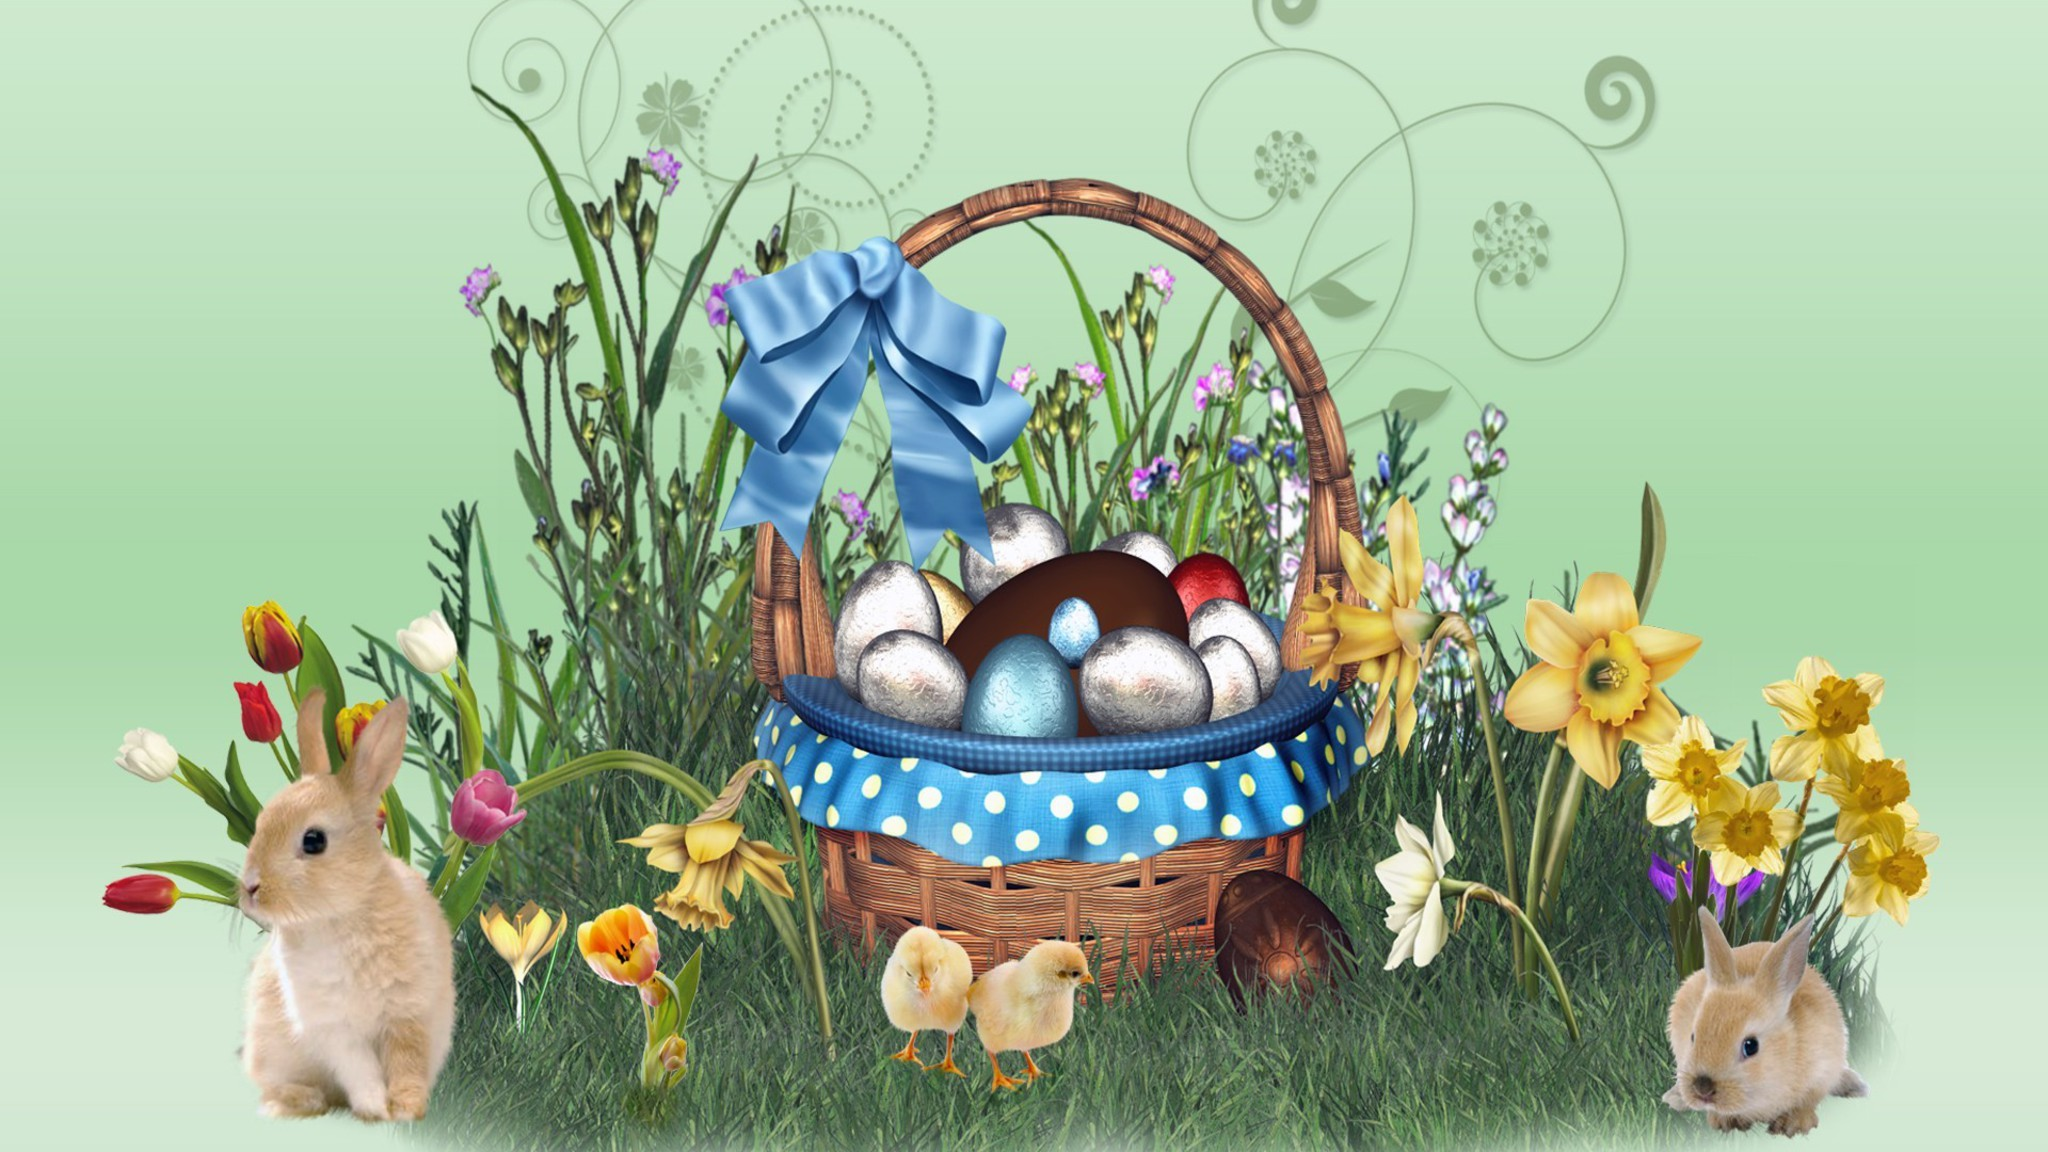 free spring wallpaper for ipad 2